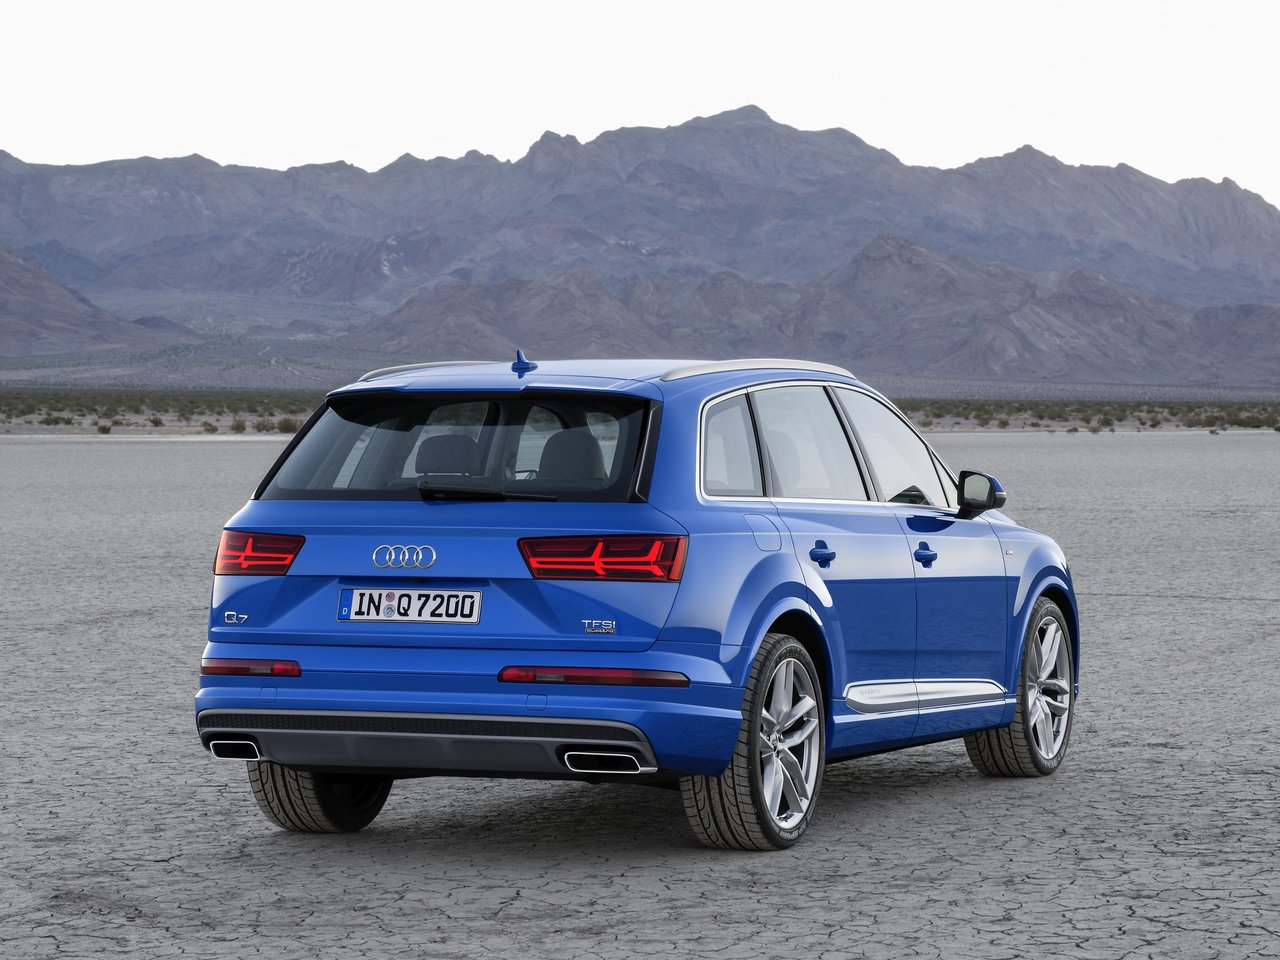 Audi Q7 II 3.0 TFSI V6 (333 Hp) quattro tiptronic Technical specifications and fuel economy ...